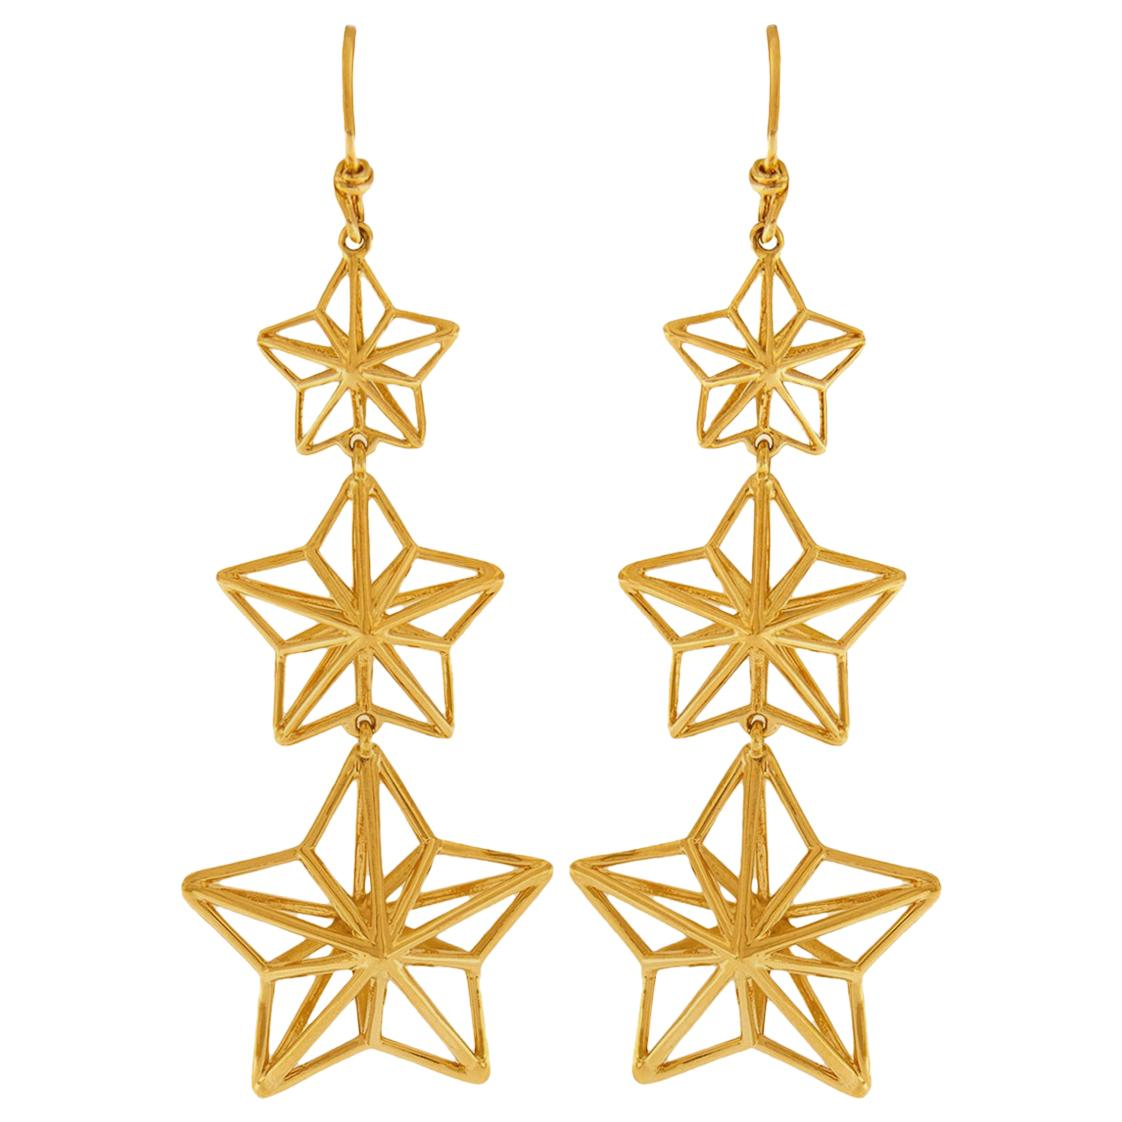 Valentin Magro Gold Star Dangle Earrings with French Wire